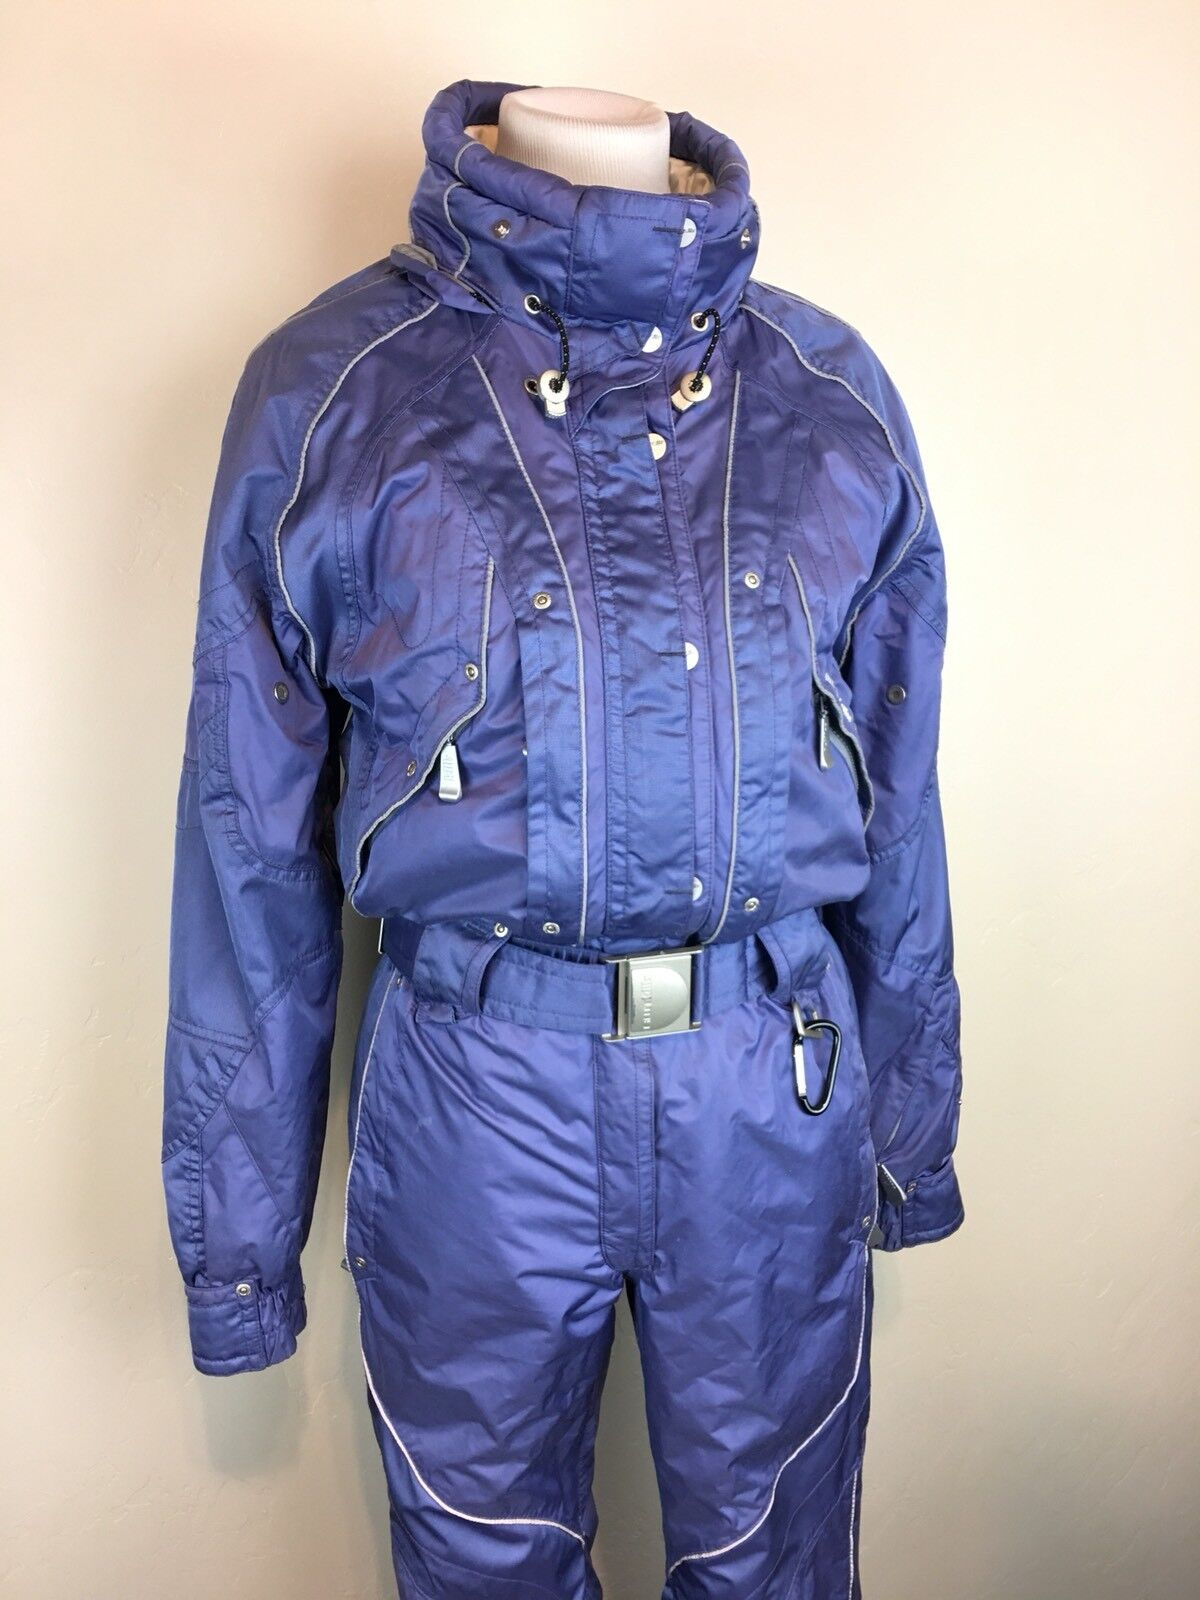 AWT Killy Women's Ski Snowsuit w  Recco - Women's Size 6